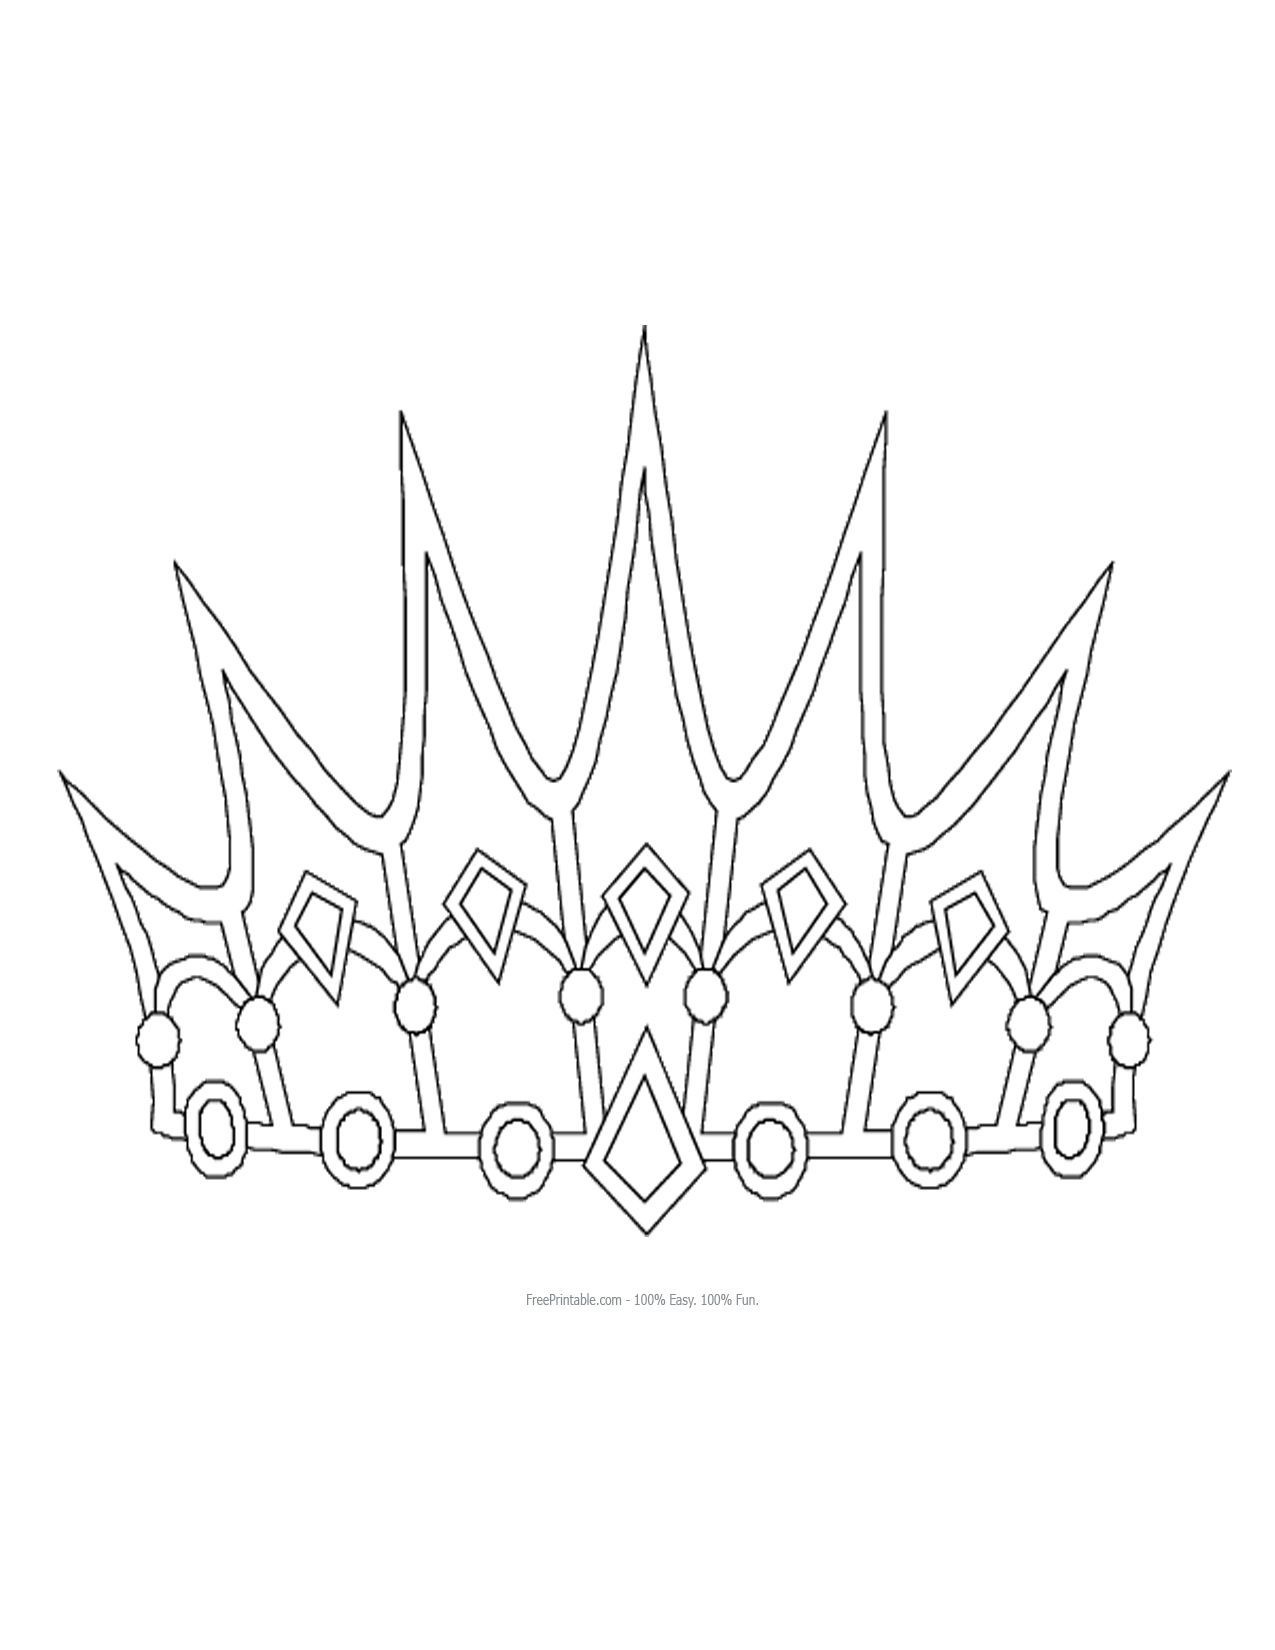 Free Printable Princess Crown Shapes | Print - Princess ...